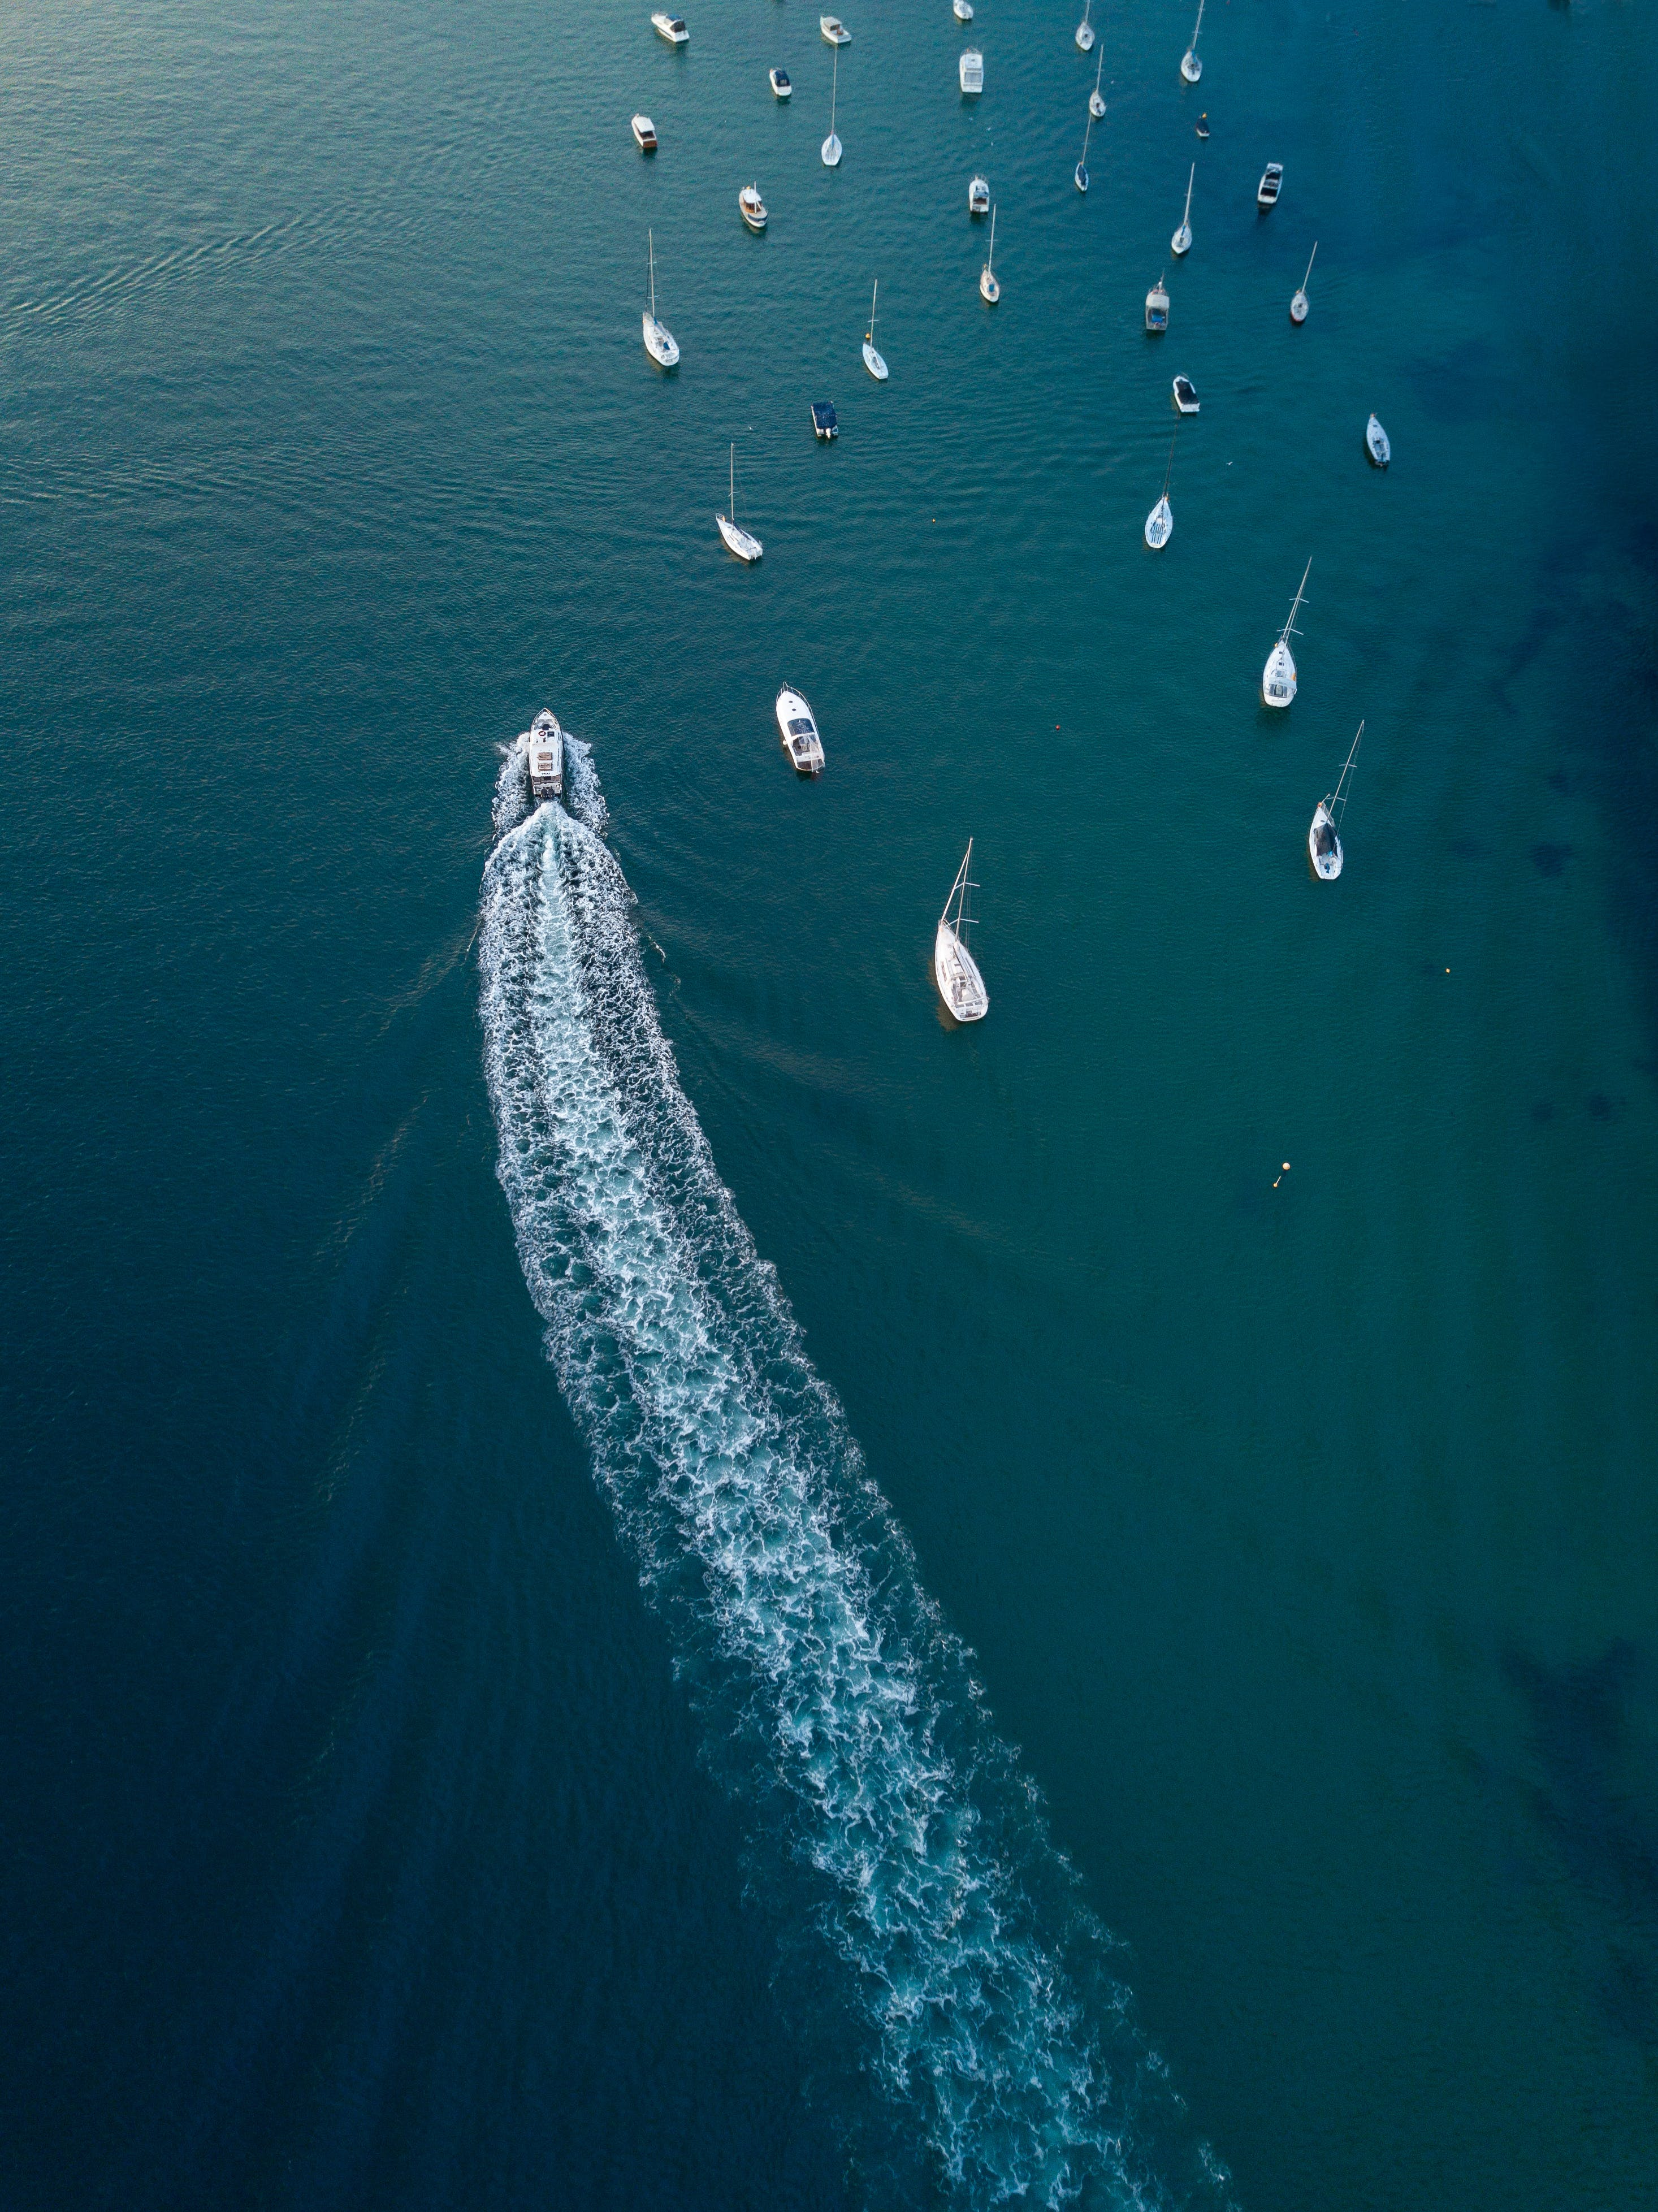 Aerial Photo of Motorboats